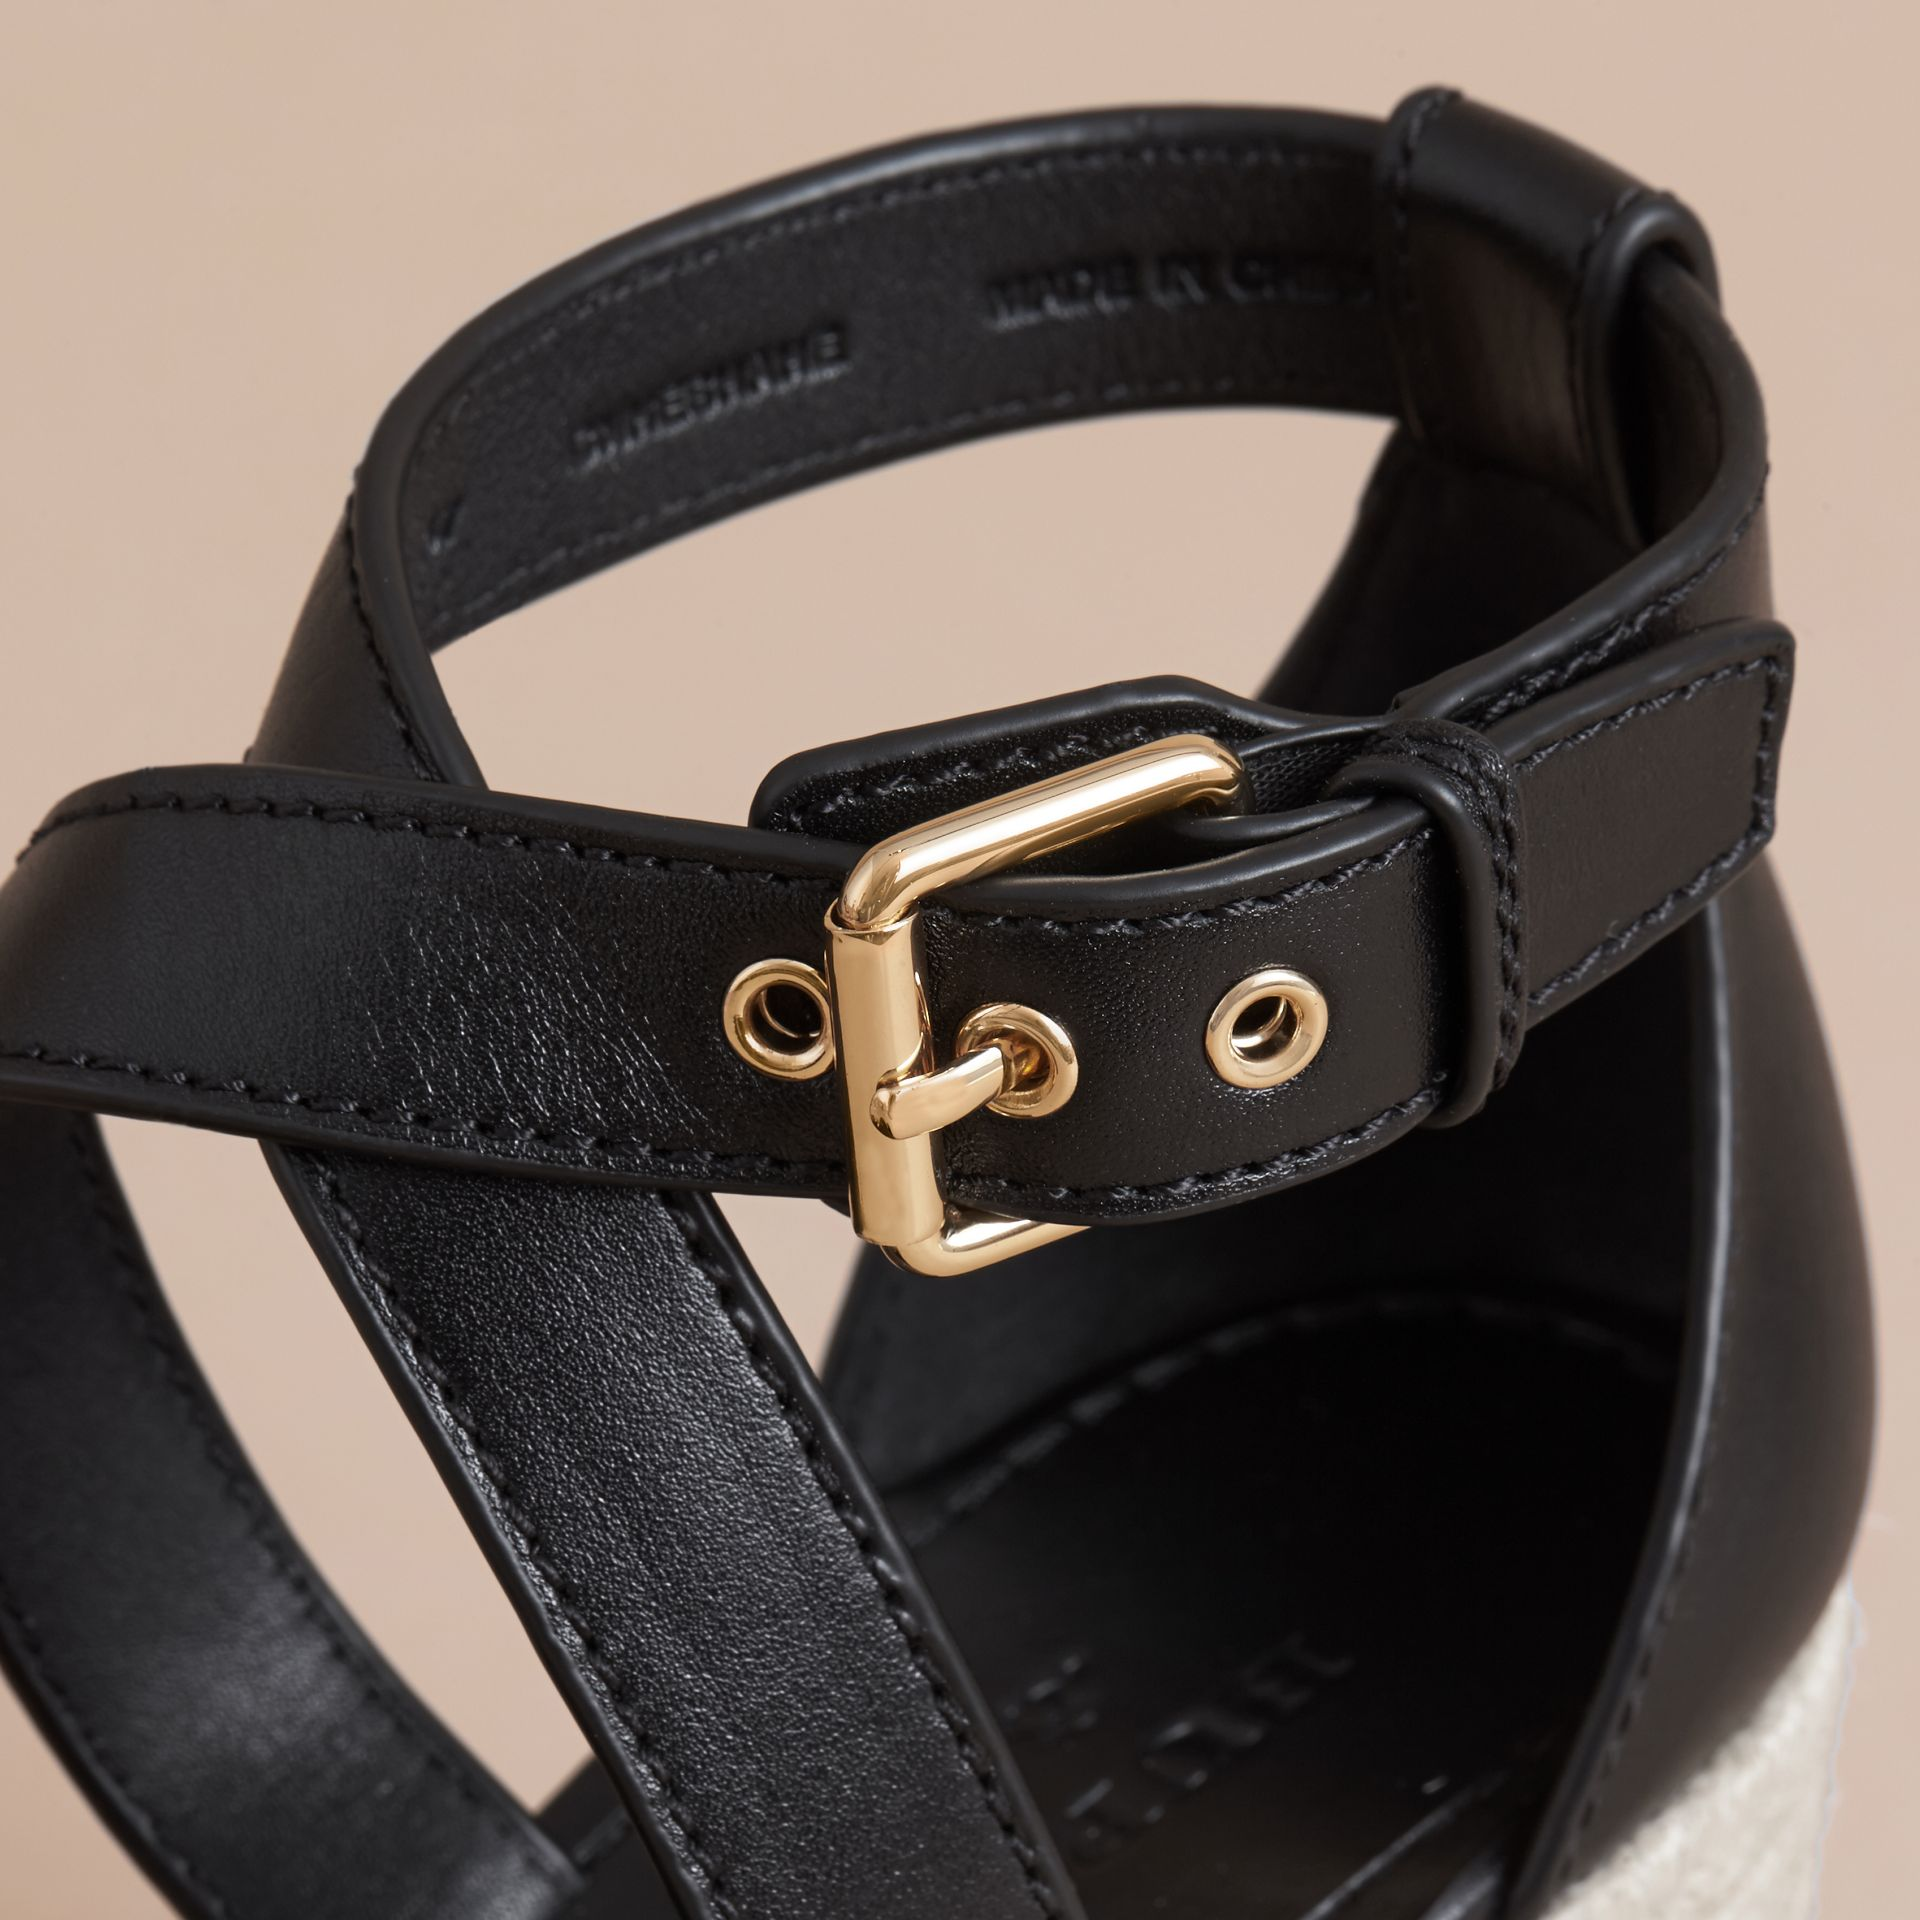 Leather and House Check Platform Espadrille Wedge Sandals in Black - Women | Burberry - gallery image 2